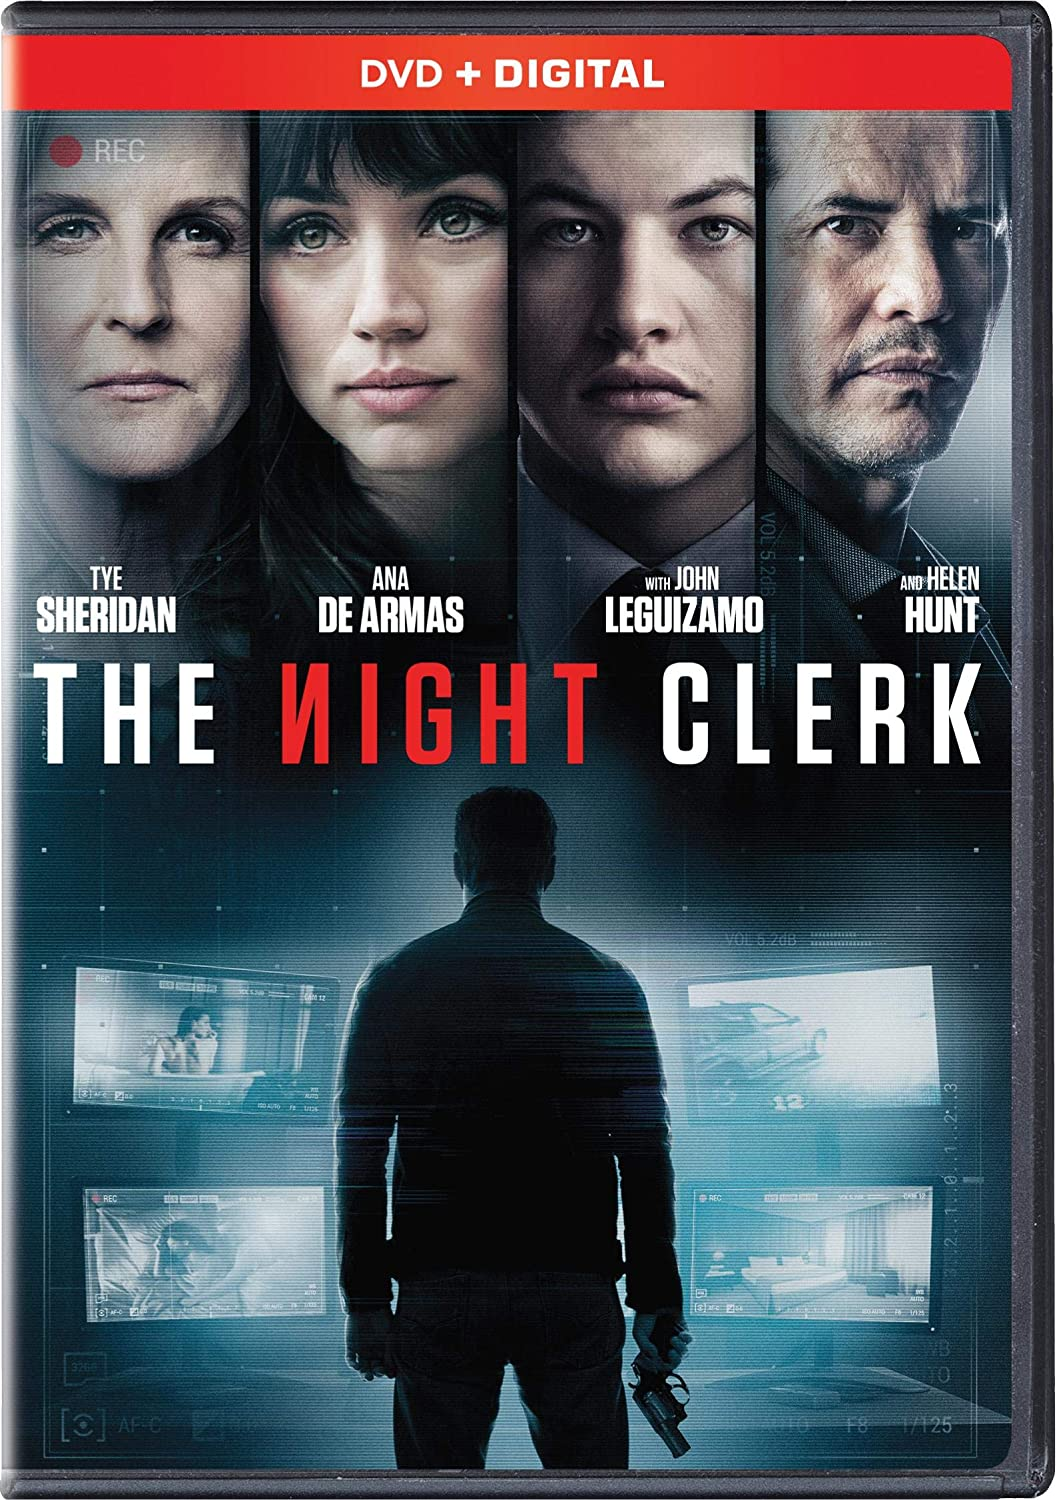 The Night Clerk Blu-ray Review